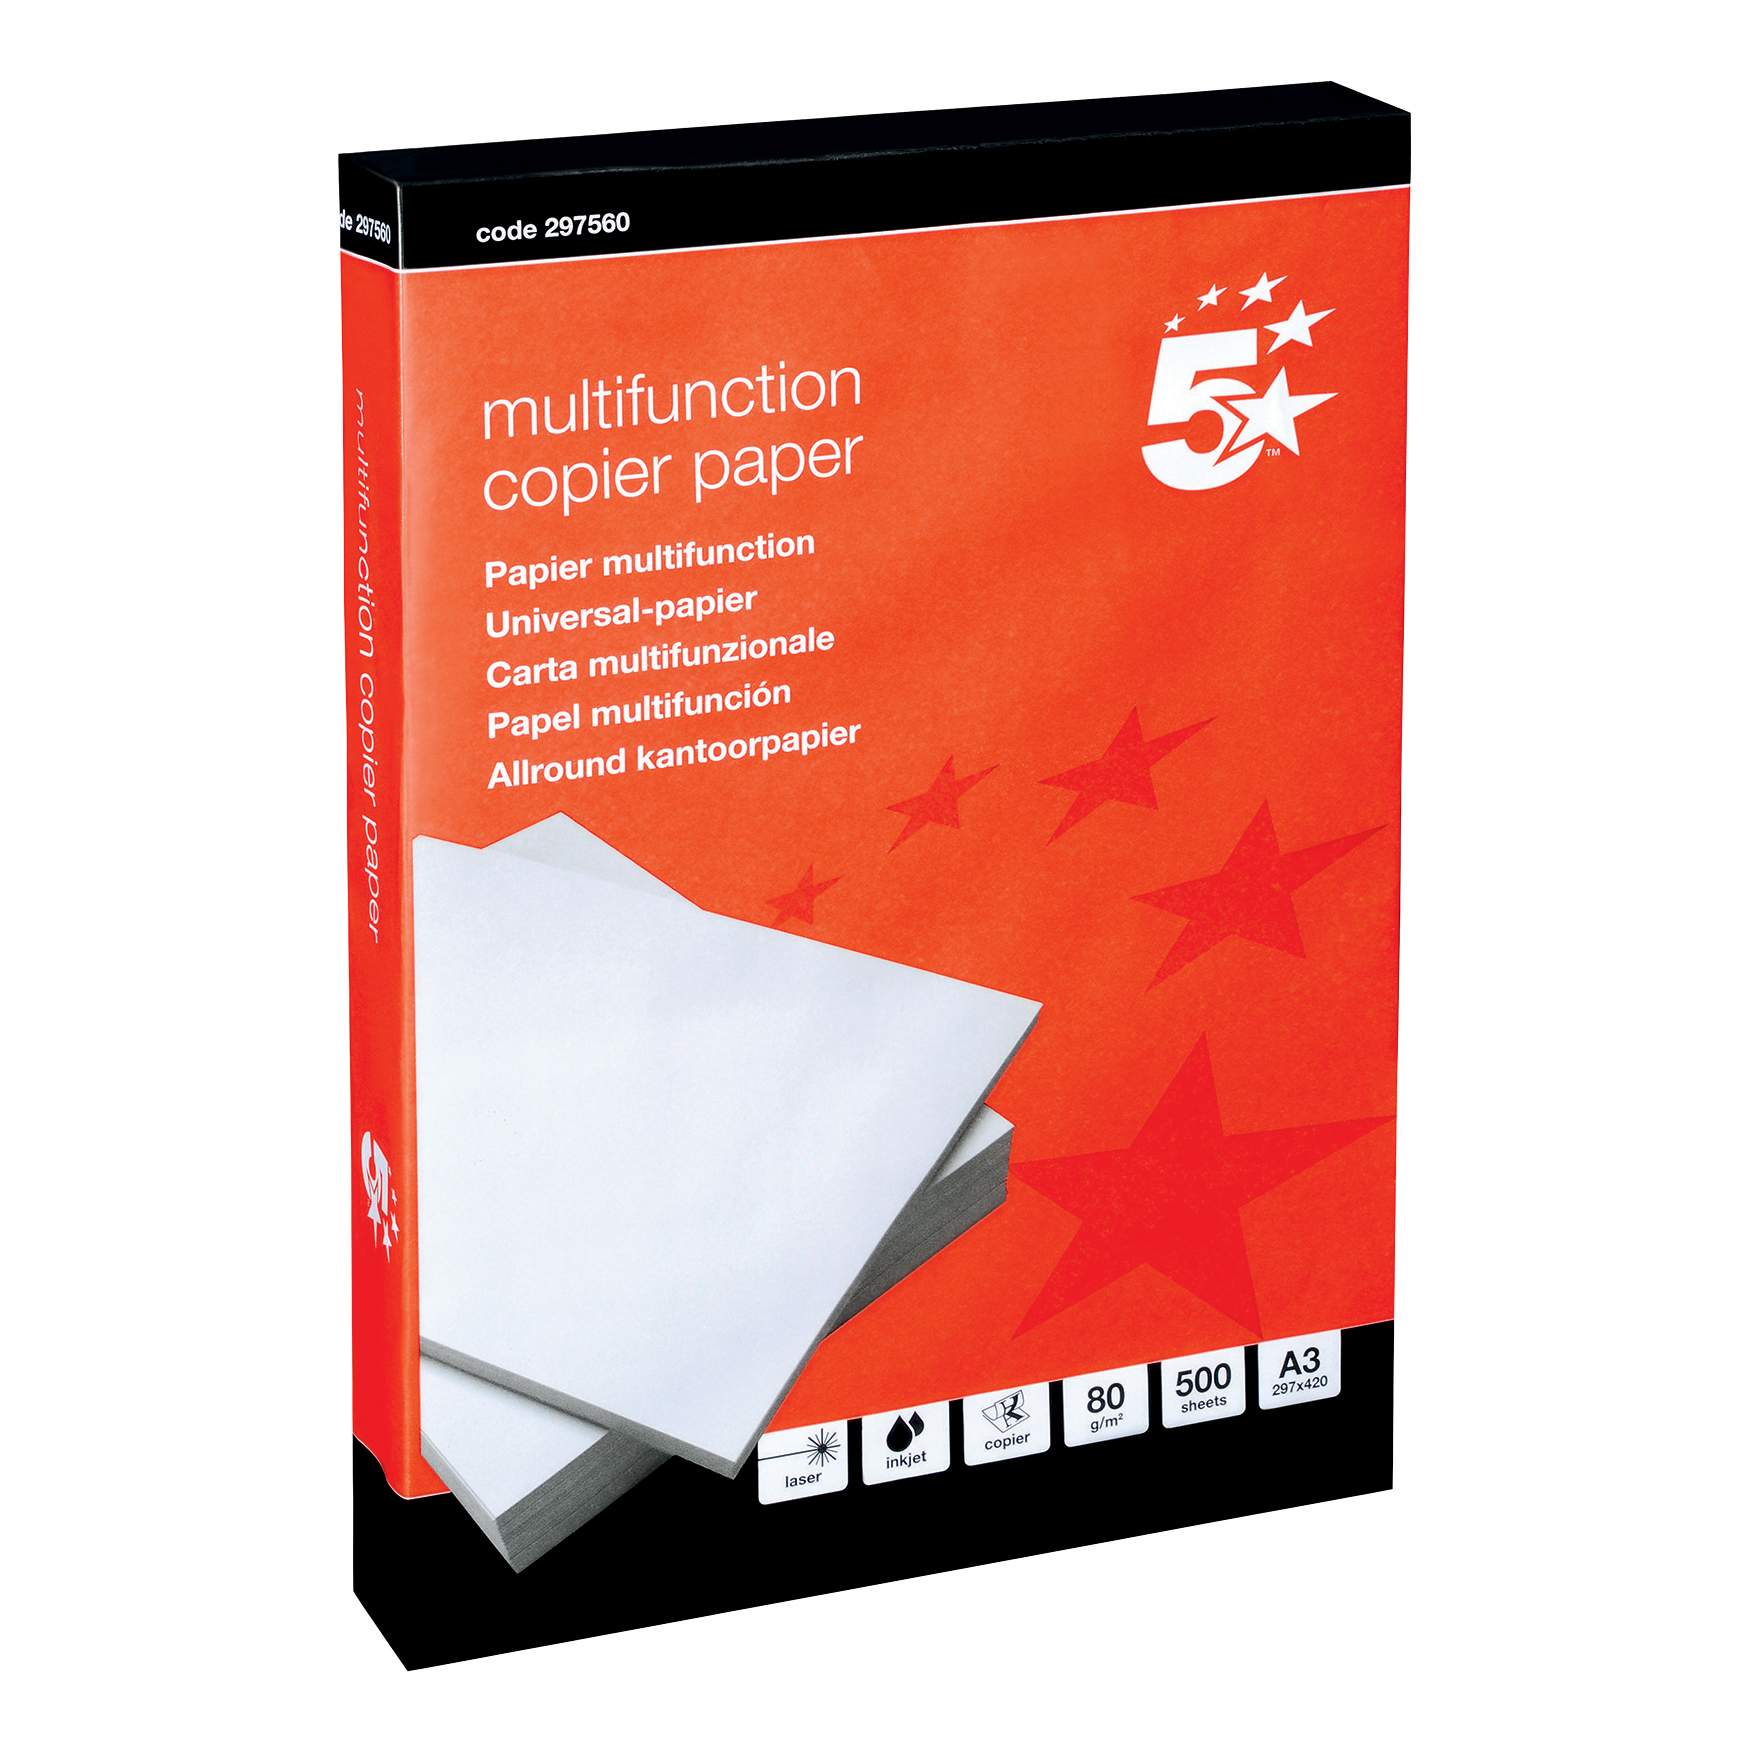 A3 5 Star Office Copier Paper Multifunctional Ream-Wrapped 80gsm A3 White [500 Sheets]